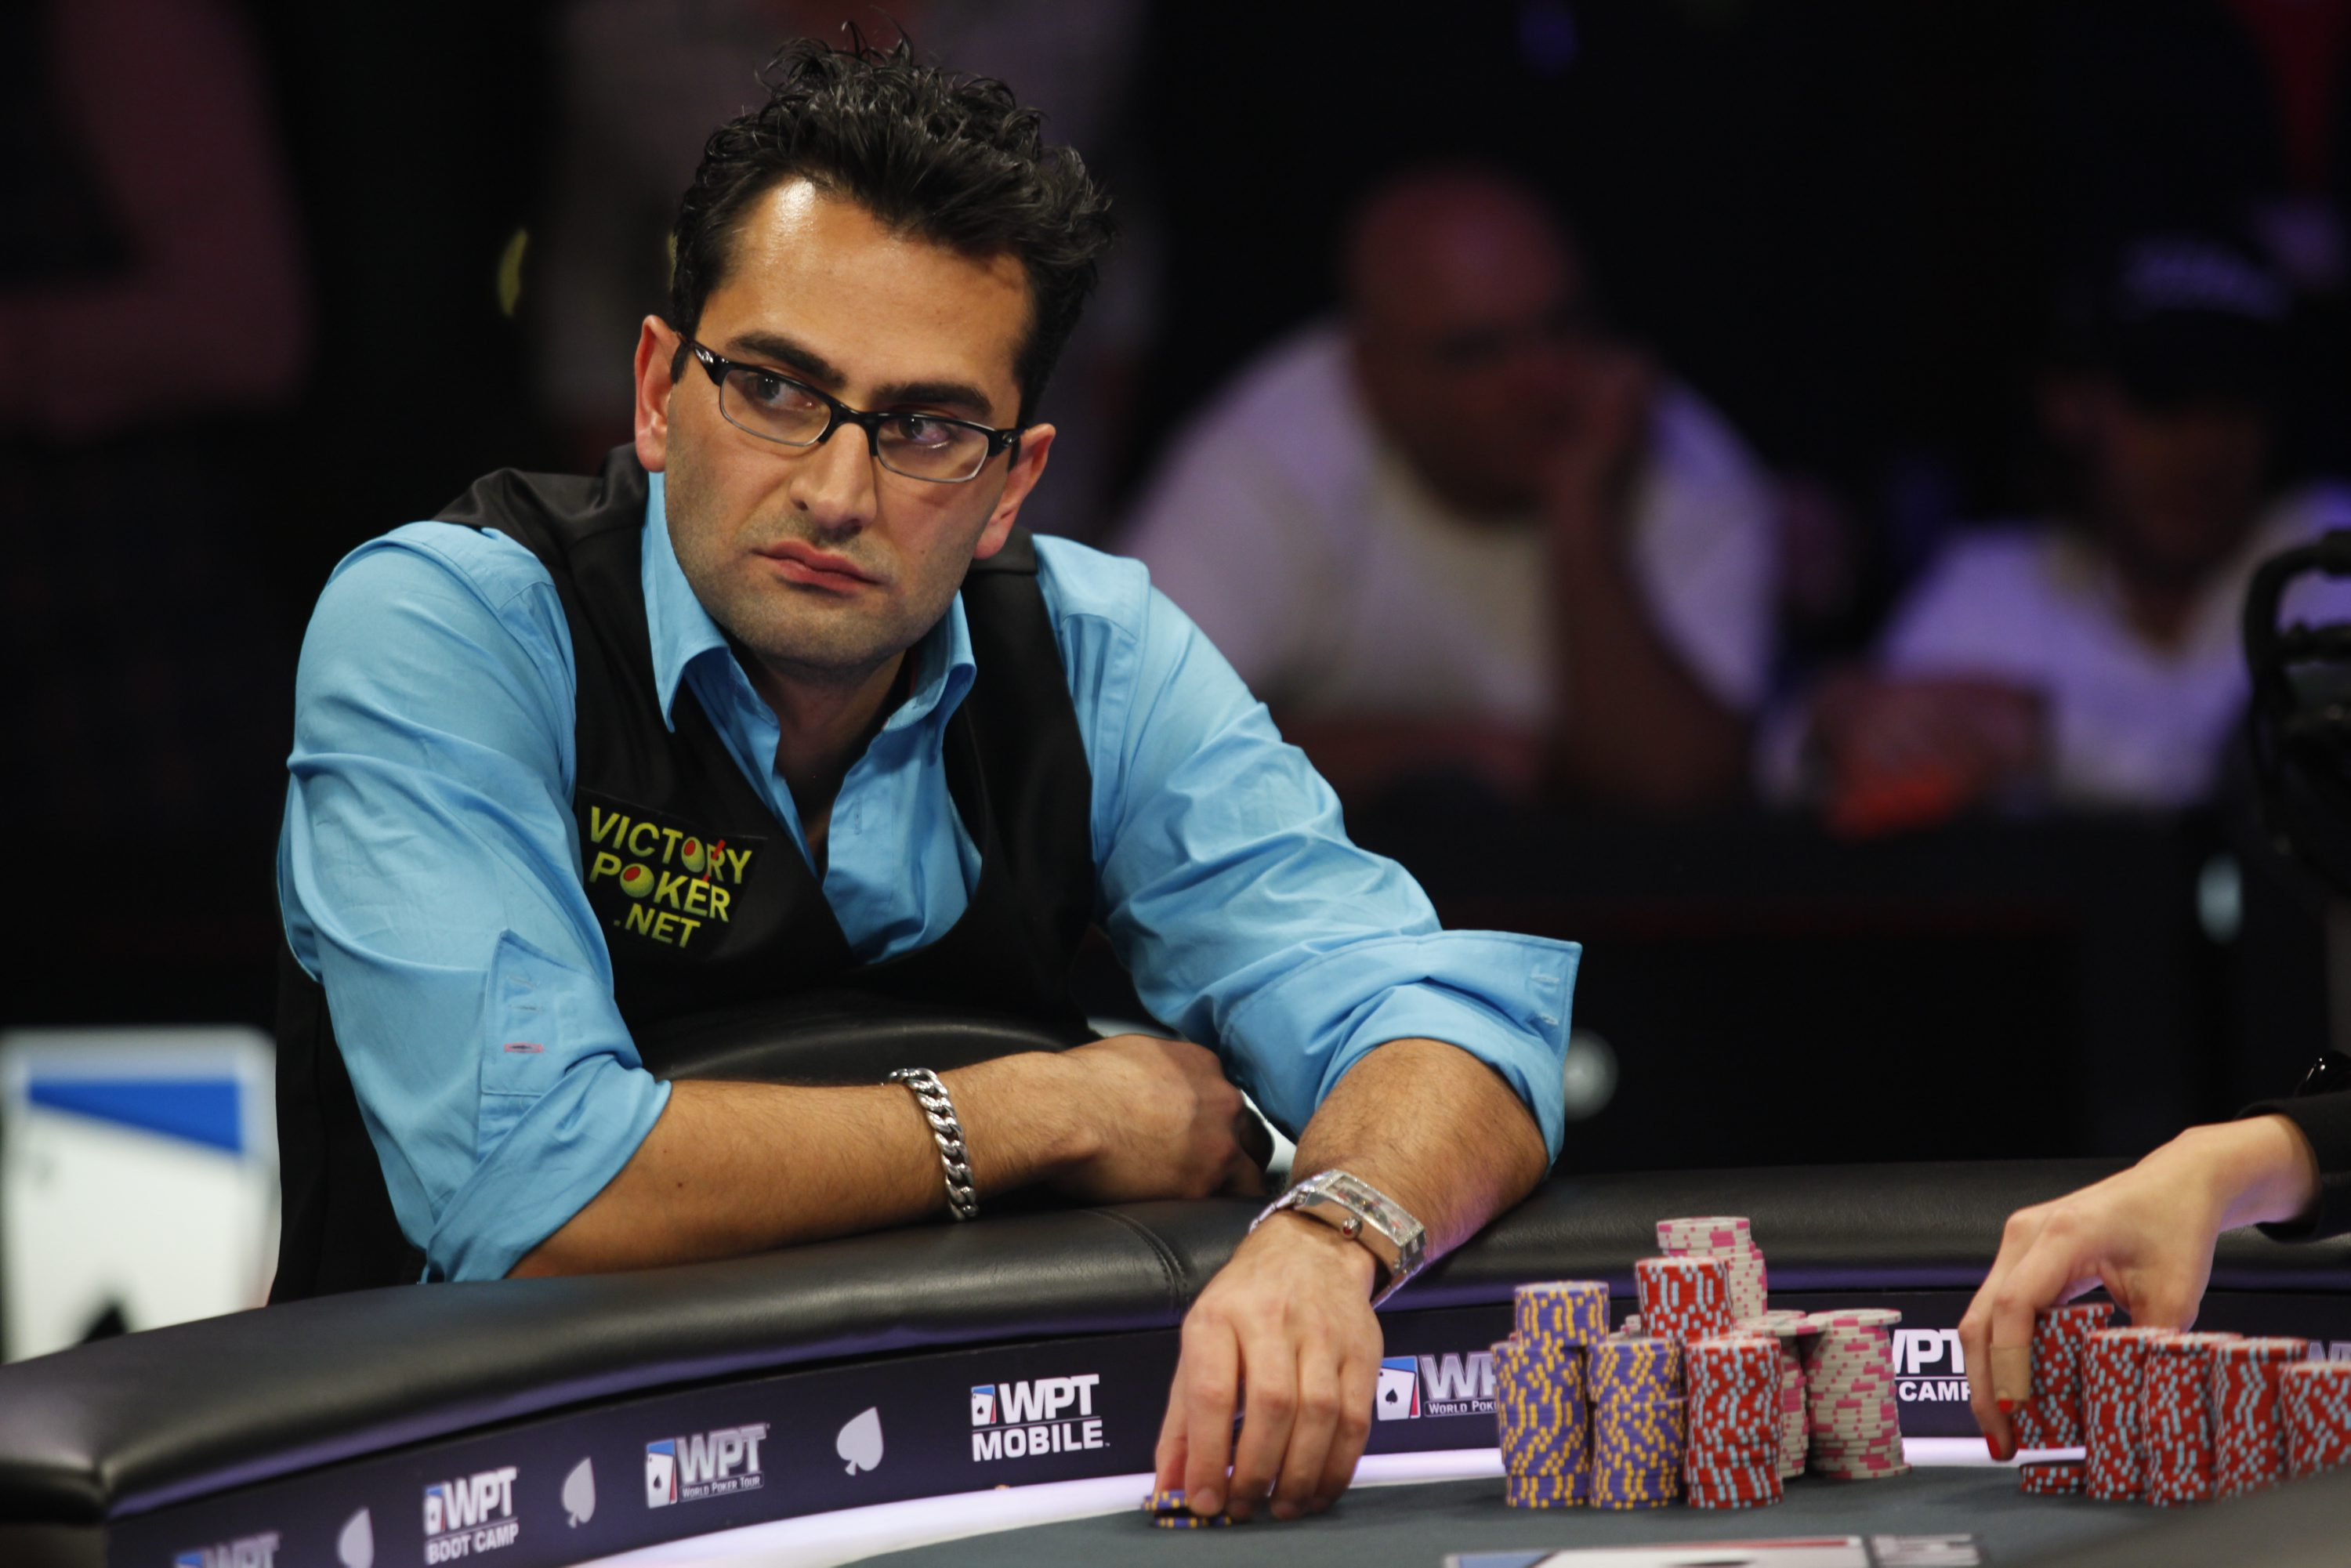 Aj Holz fedor holz antonio esfandiari among 15 players selected by to